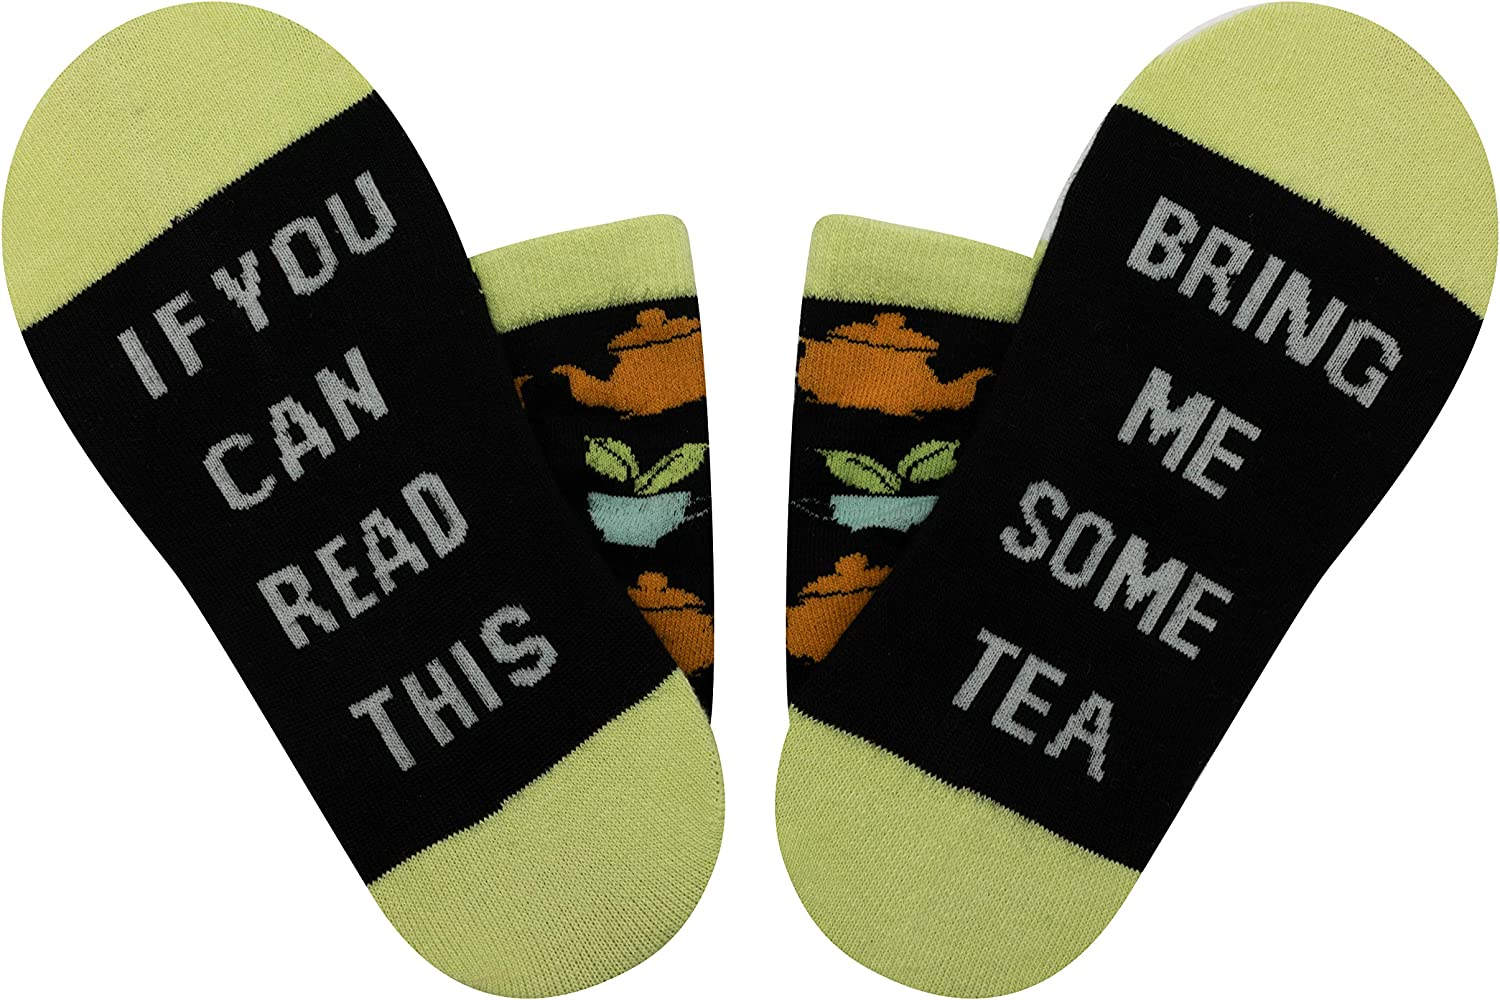 Unisex 1PK Novelty Socks If You Can Read This Printed Funny Socks with Movies Tea Coffee Tacos …